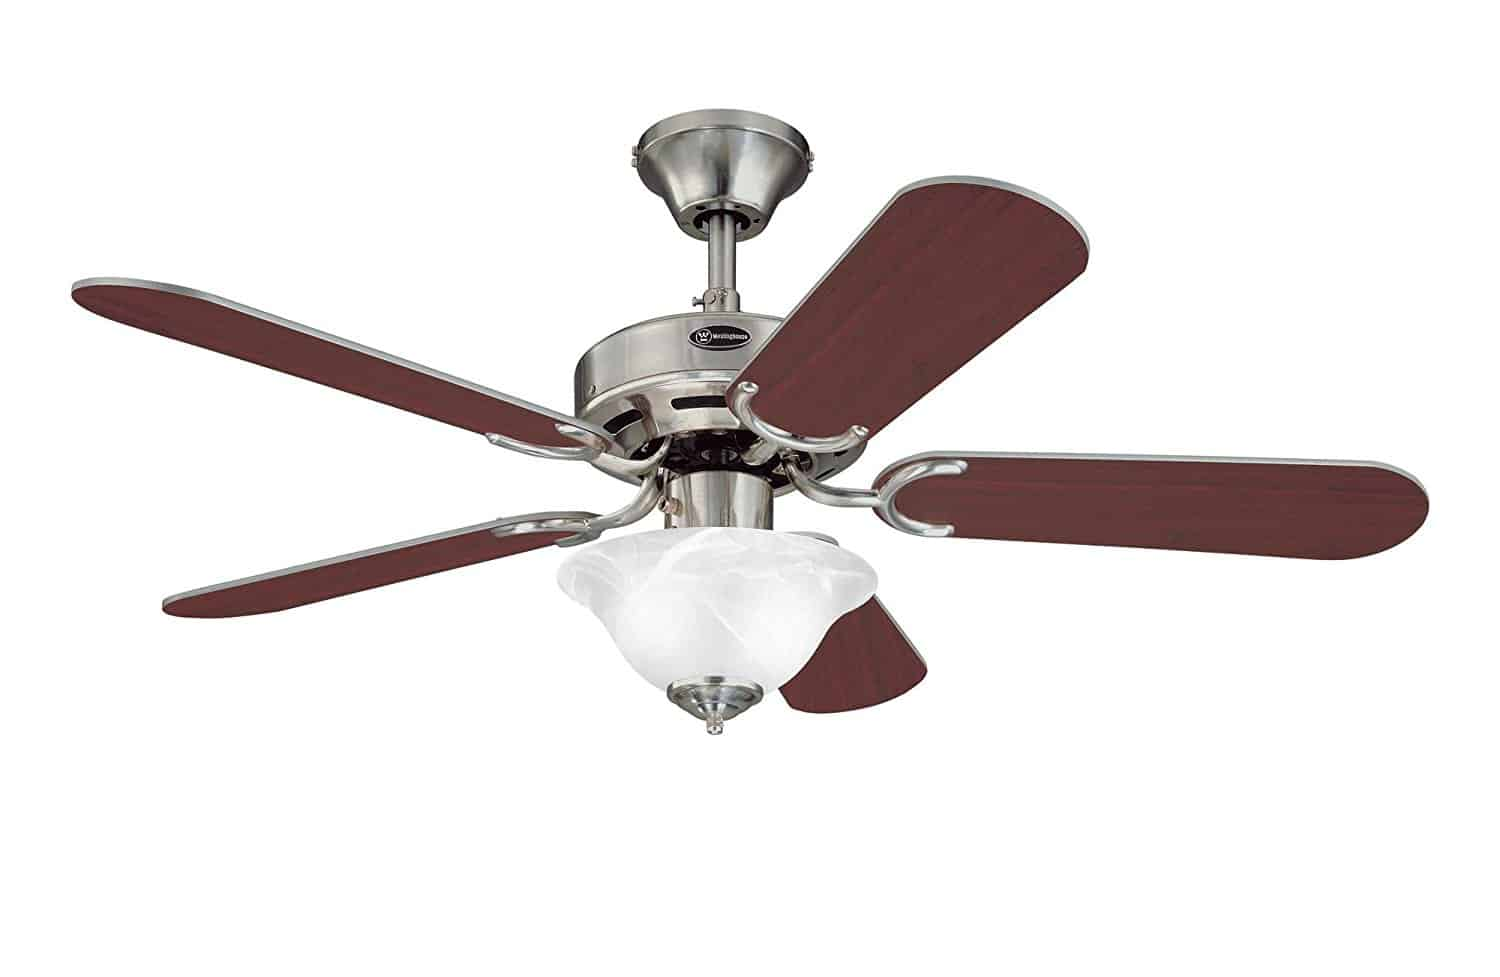 Westinghouse 42-Inch Richboro Reversible Five-Blade Indoor Ceiling Fan Review